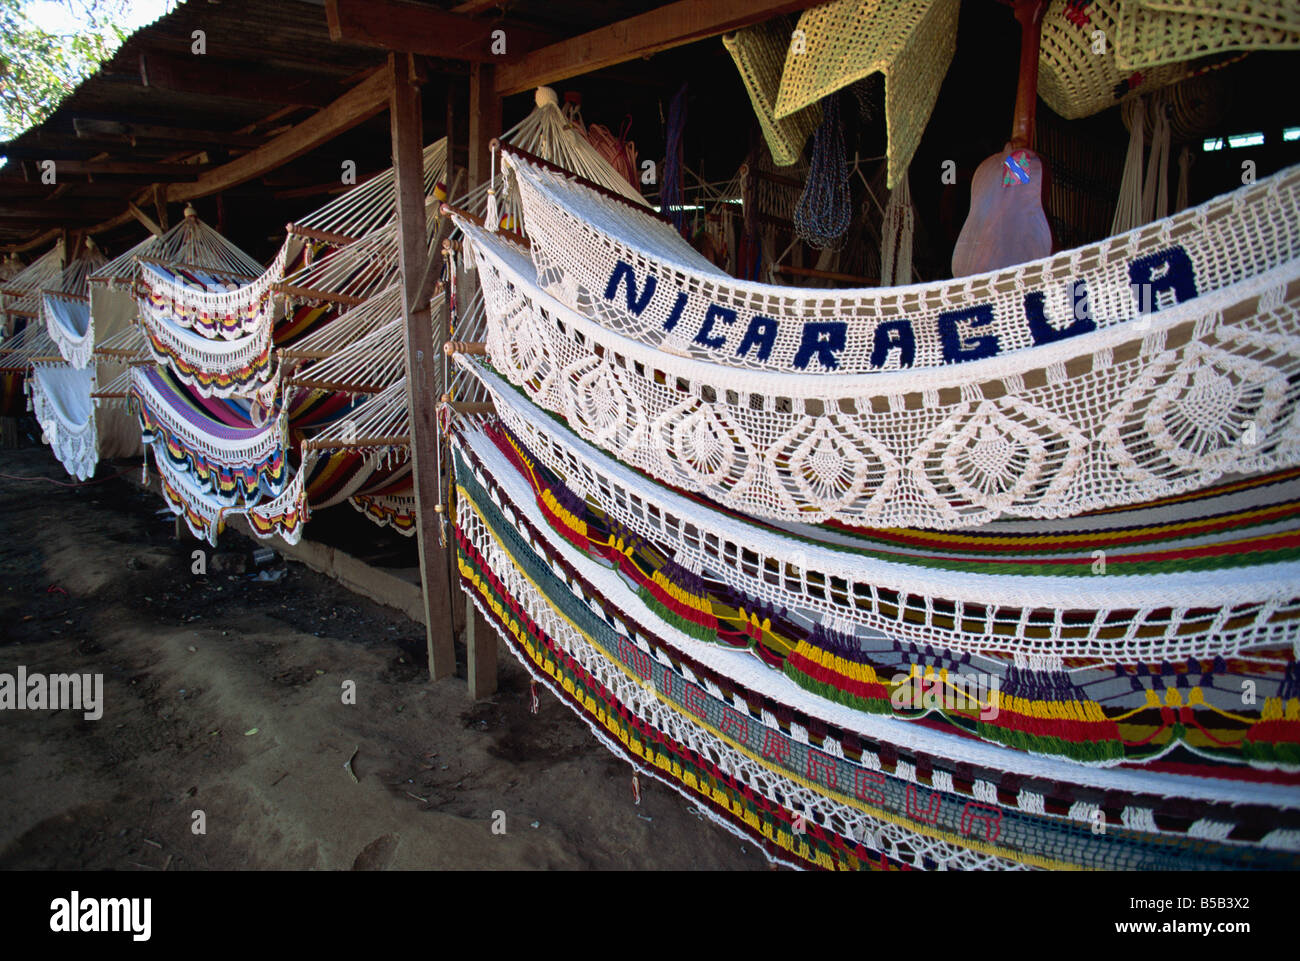 Elaborate hammocks for sale in the market, Masaya, Nicaragua, Central America - Stock Image